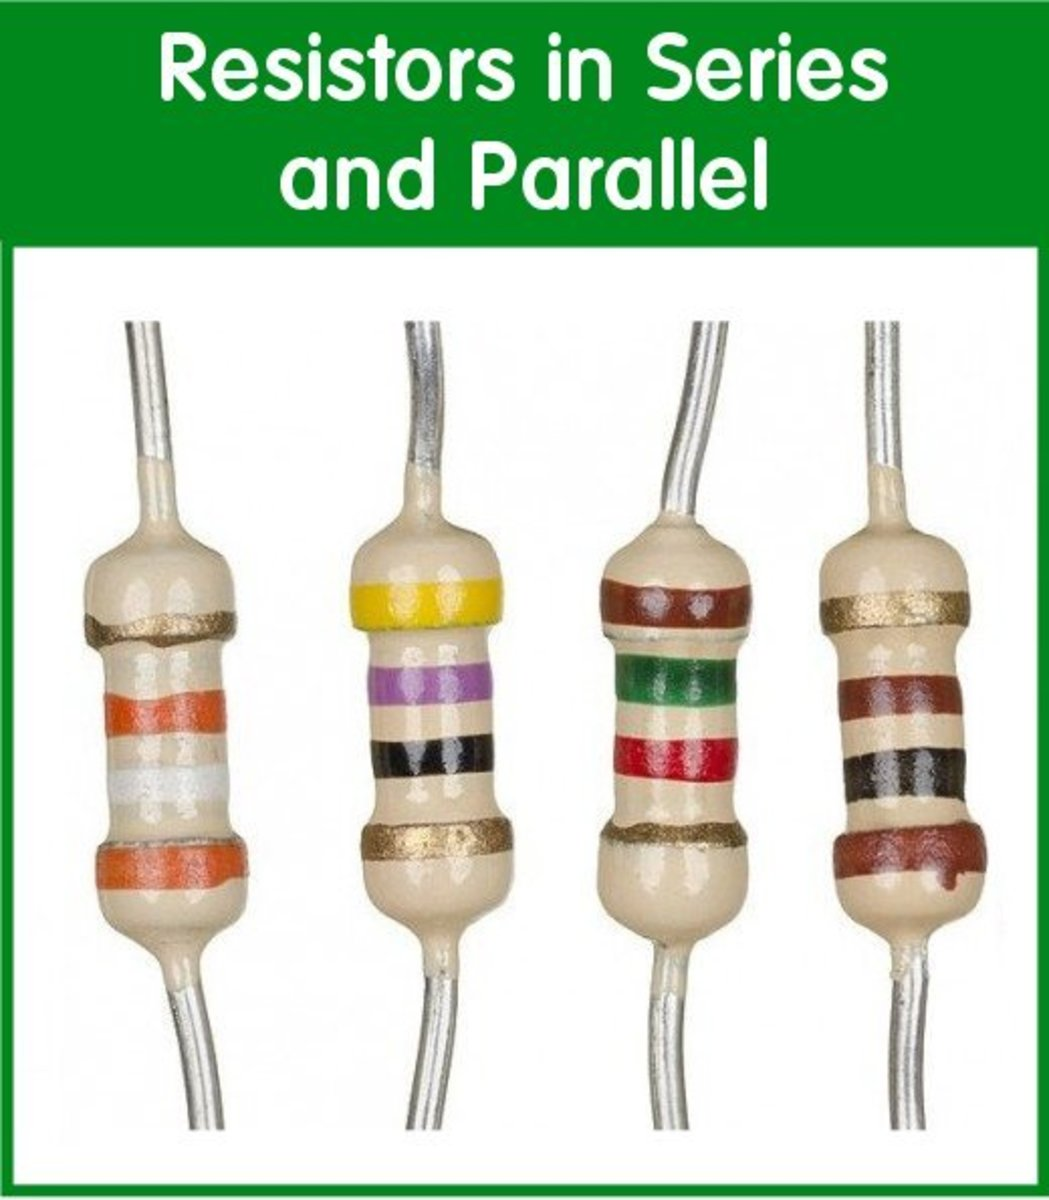 A selection of resistors